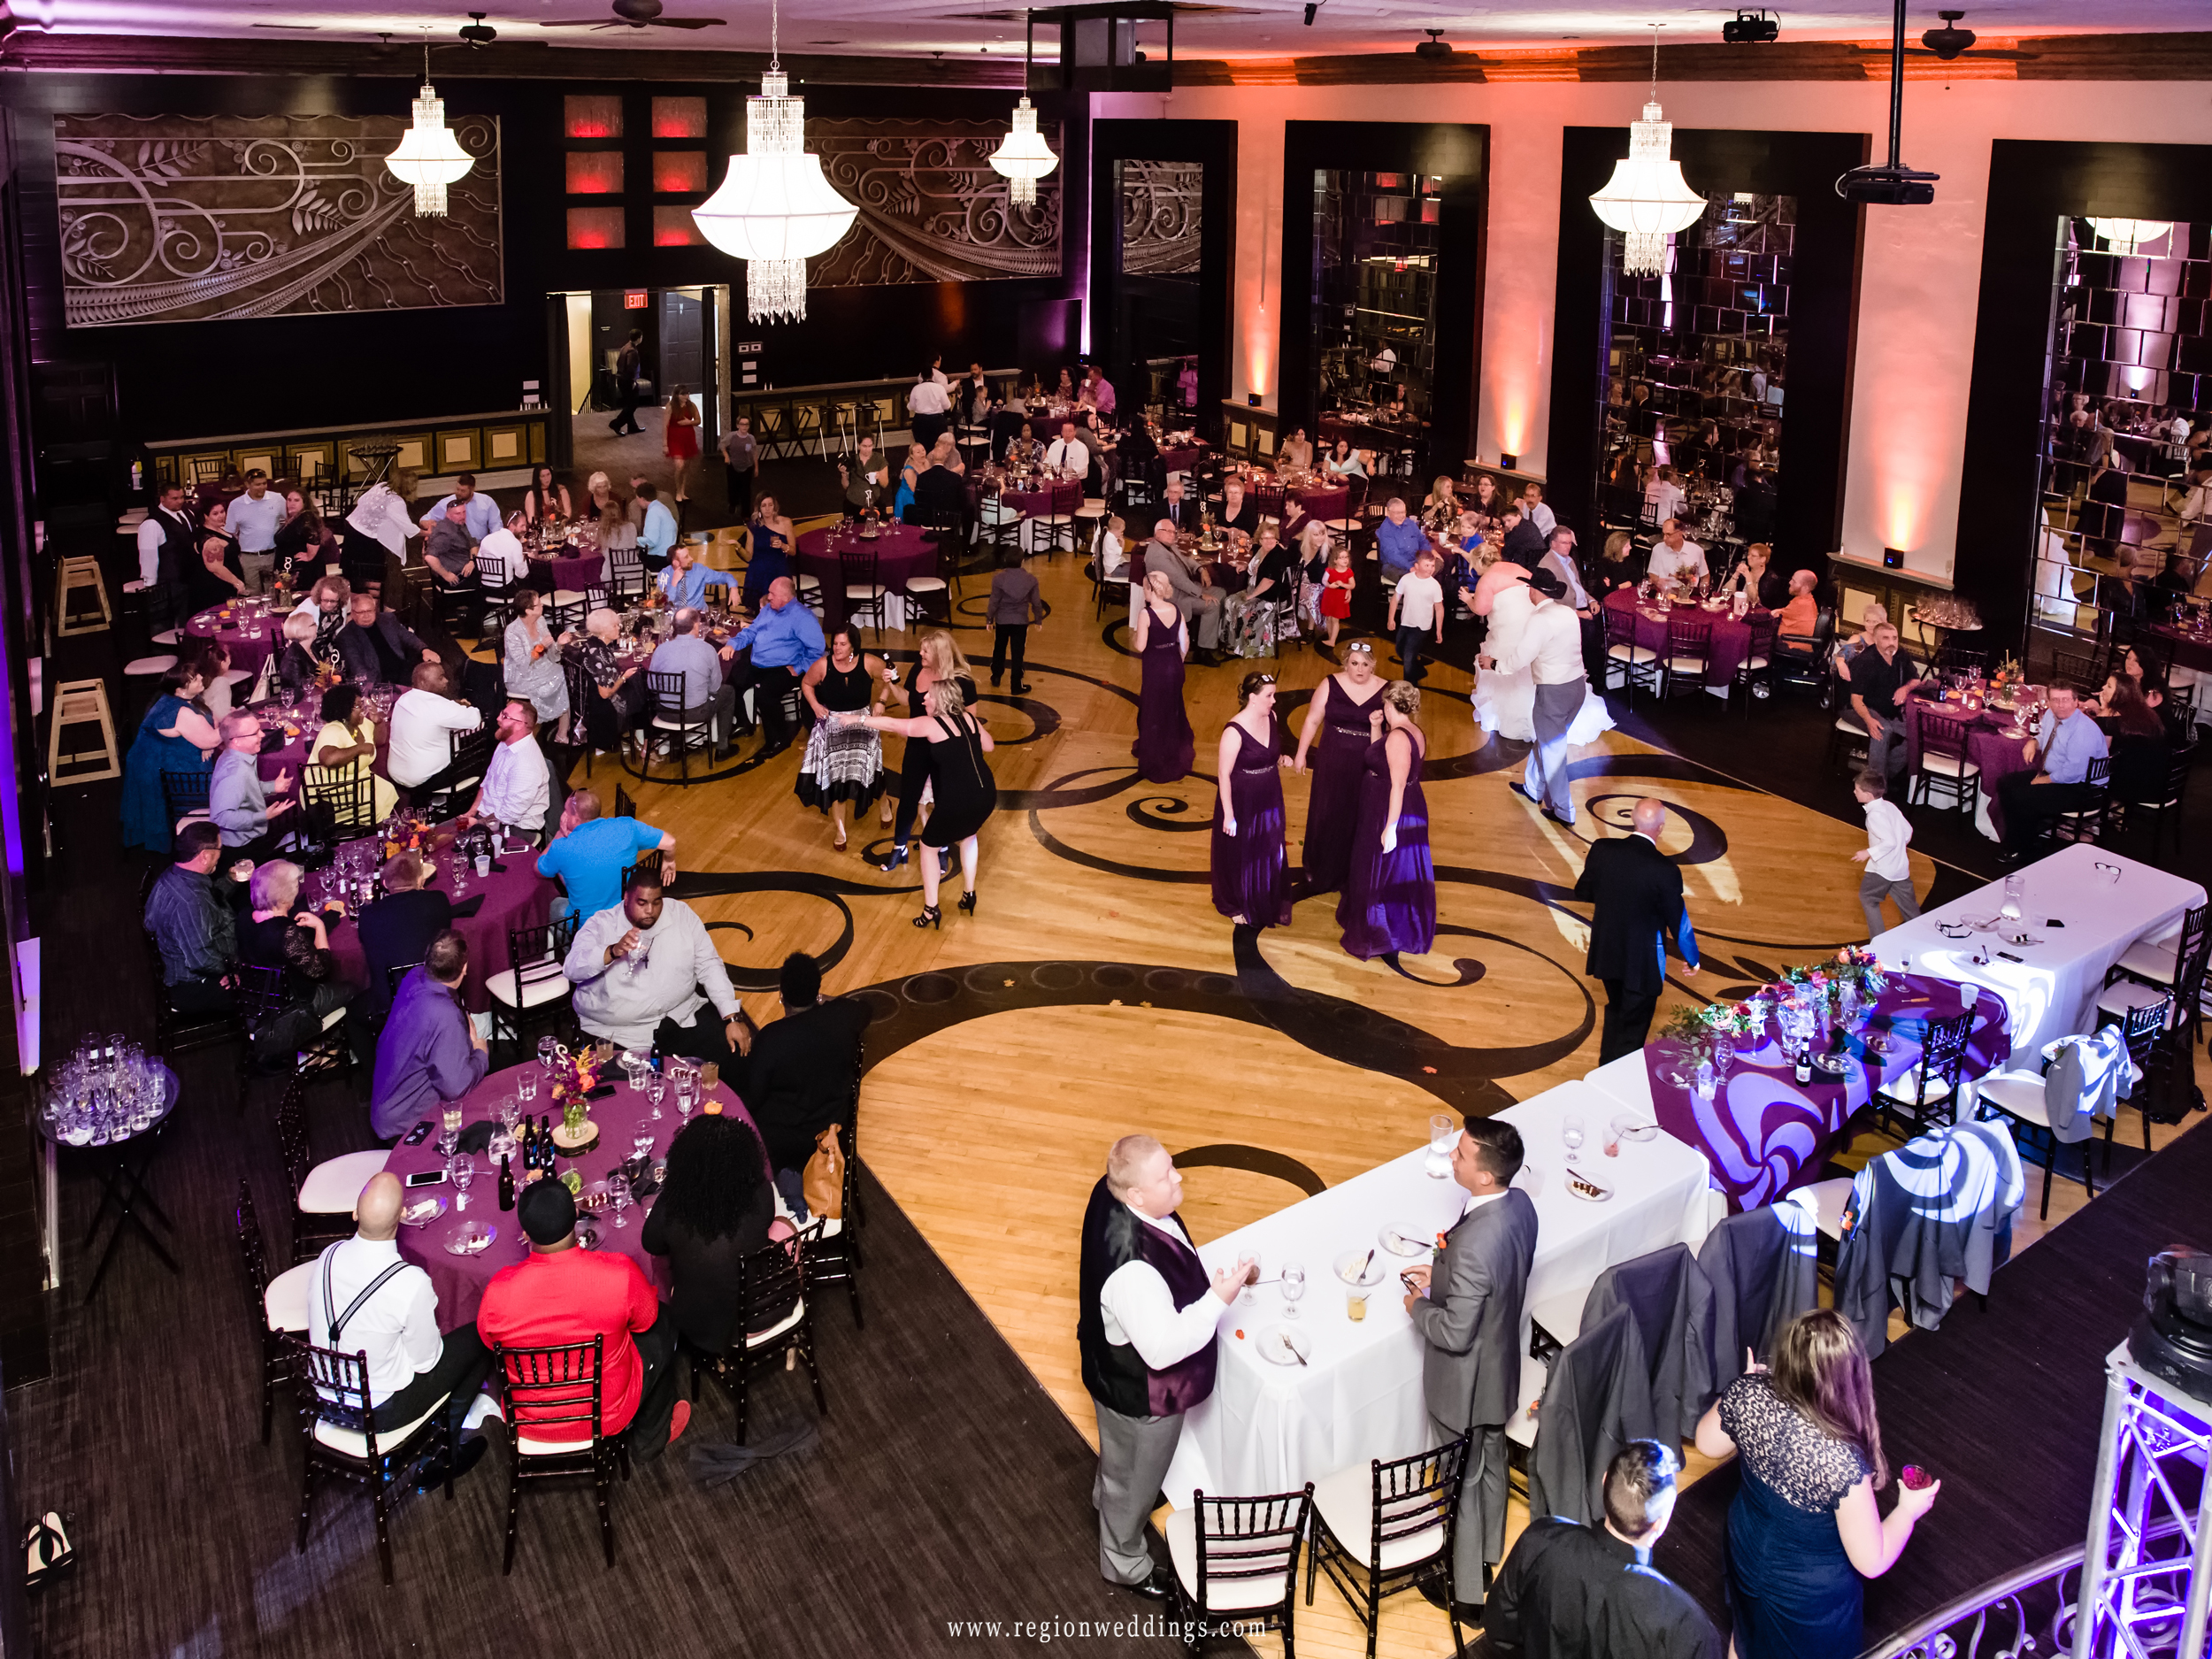 Wedding reception from the balcony at The Allure in Laporte, Indiana.